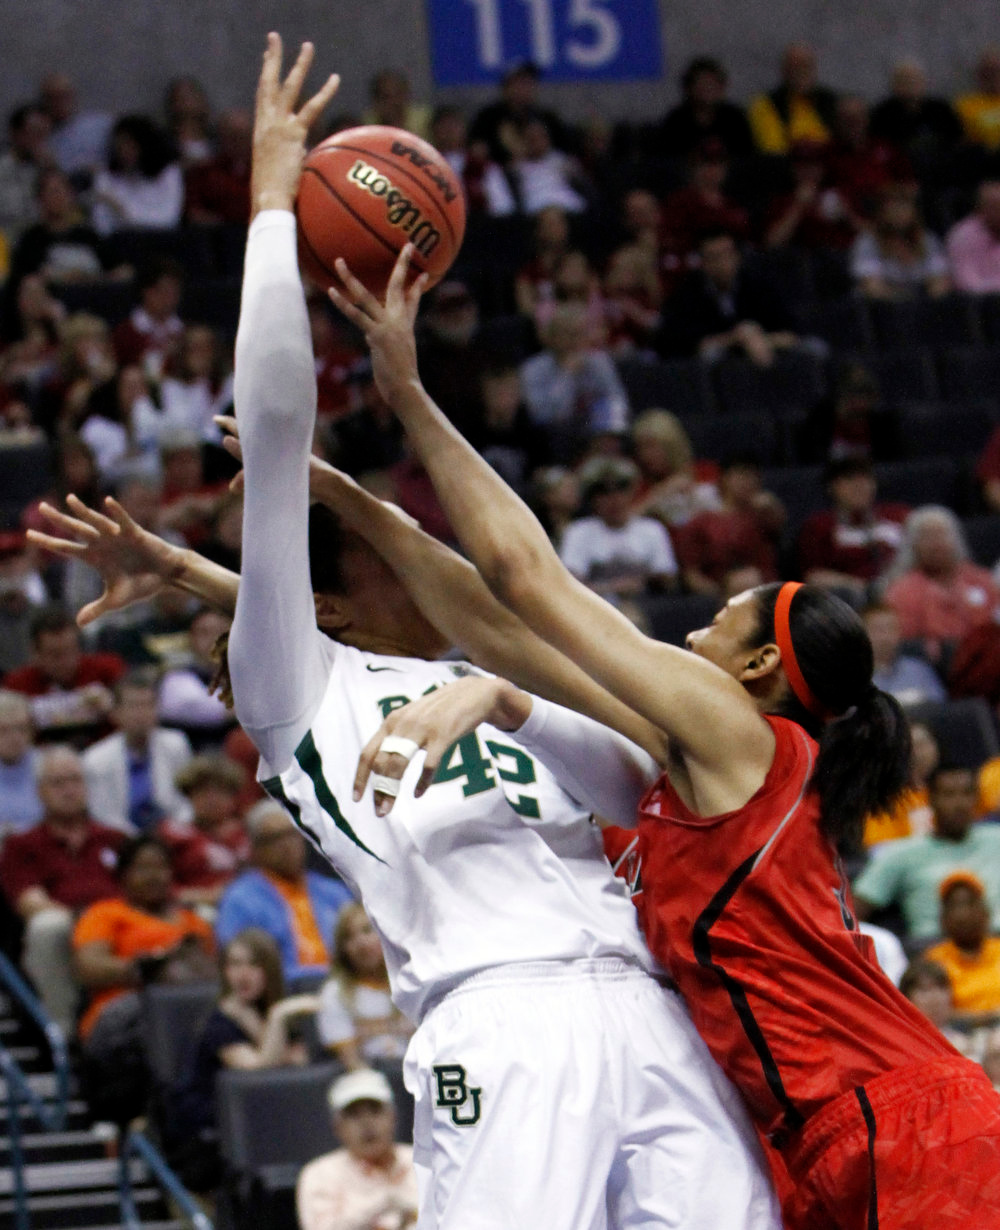 . Louisville\'s Sheronne Vails, right, blocks a pass by Baylor\'s Brittney Griner, left, during a regional semifinal game in the women\'s NCAA college basketball tournament in Oklahoma City, Sunday, March 31, 2013.  (AP Photo/Alonzo Adams)